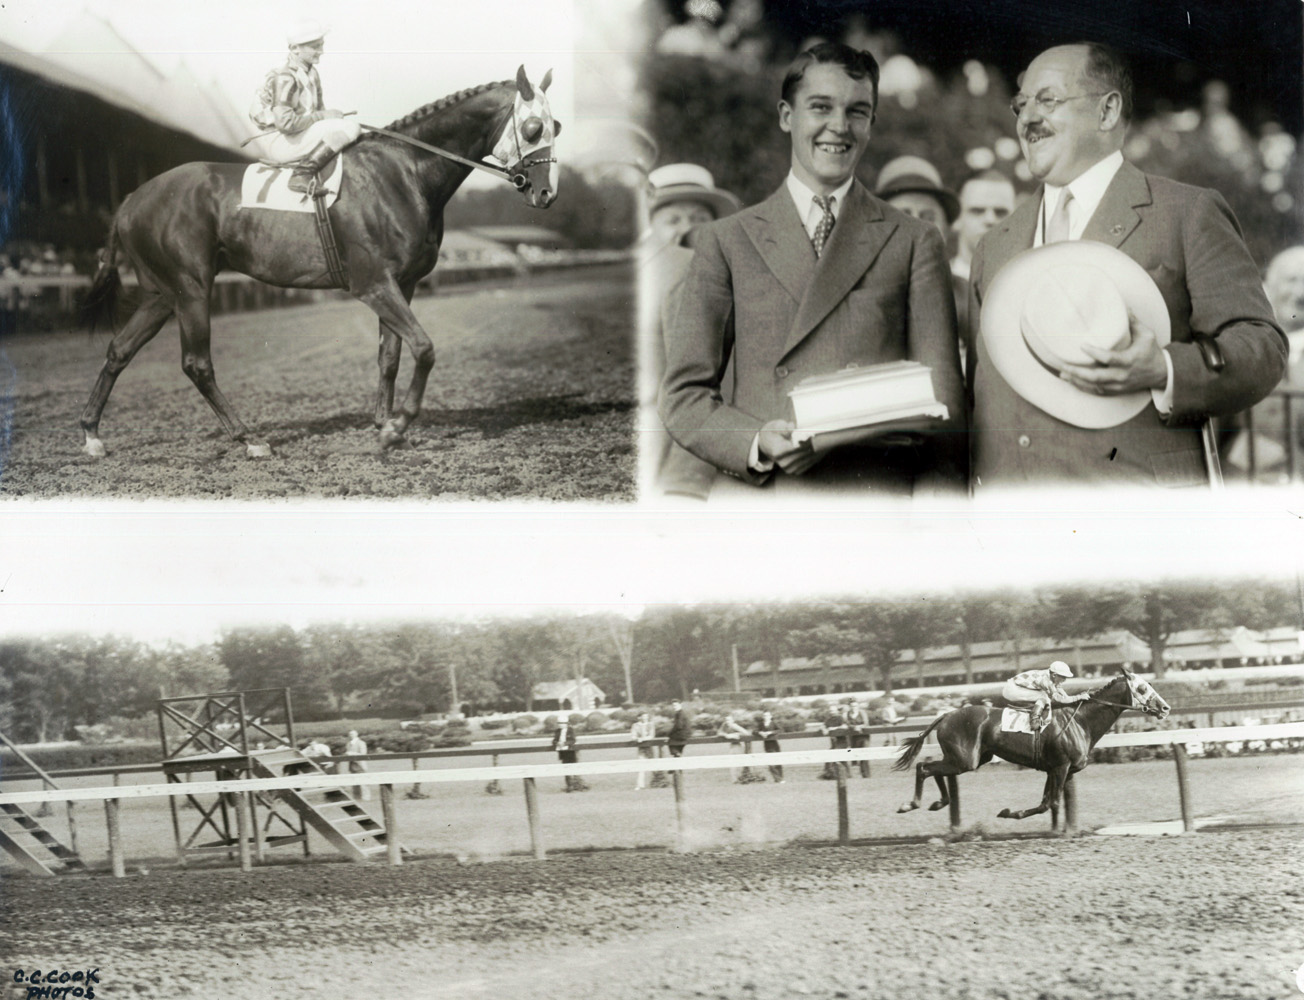 Win composite photograph for the 1934 Whitney at Saratoga, won by Discovery (owned by Alfred G. Vanderbilt II) (C. C. Cook/Museum Collection)